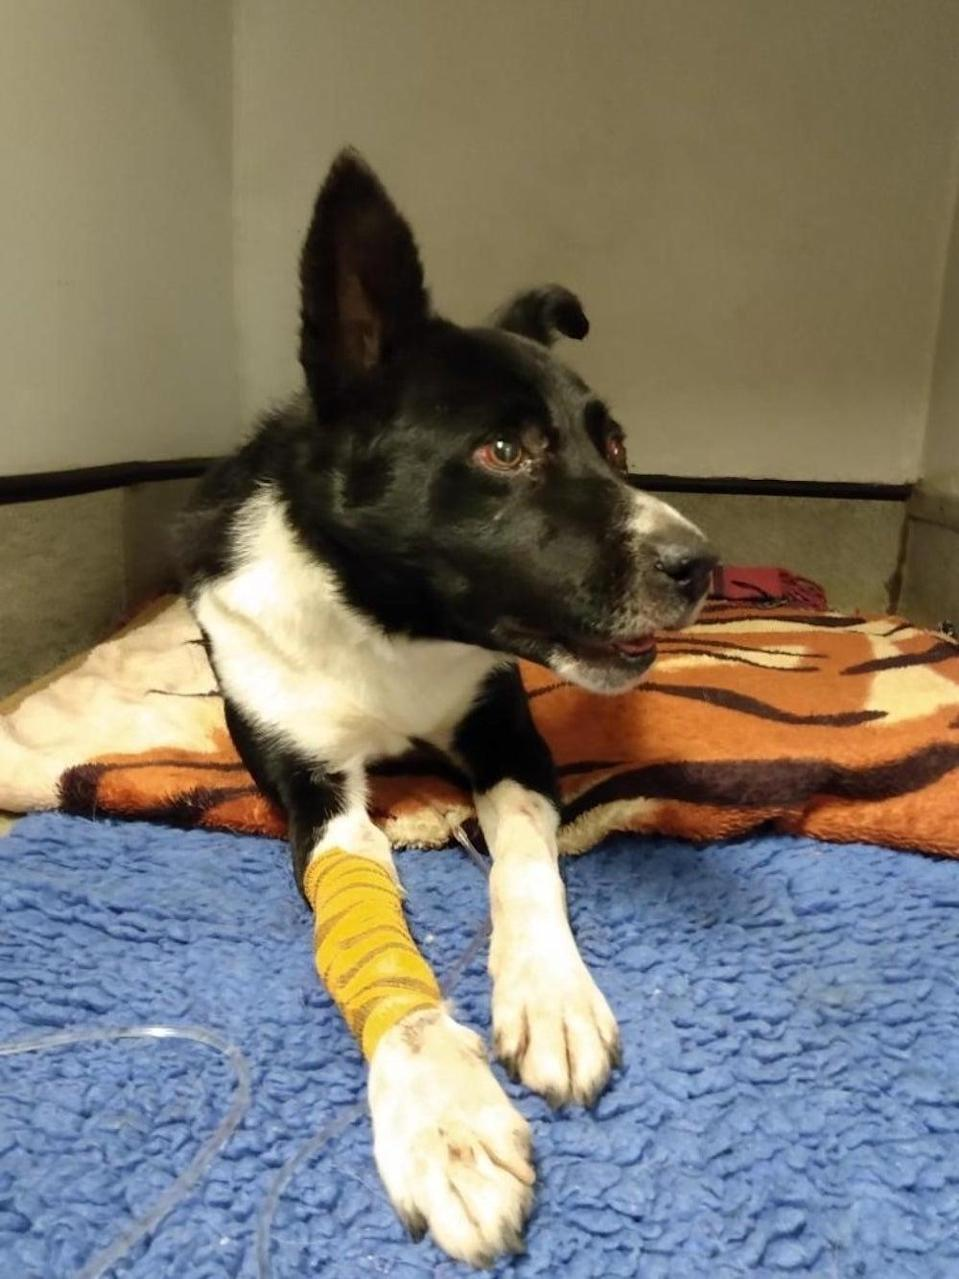 <p>Jake, the border collie, was found in a comatosed state</p> (PA)